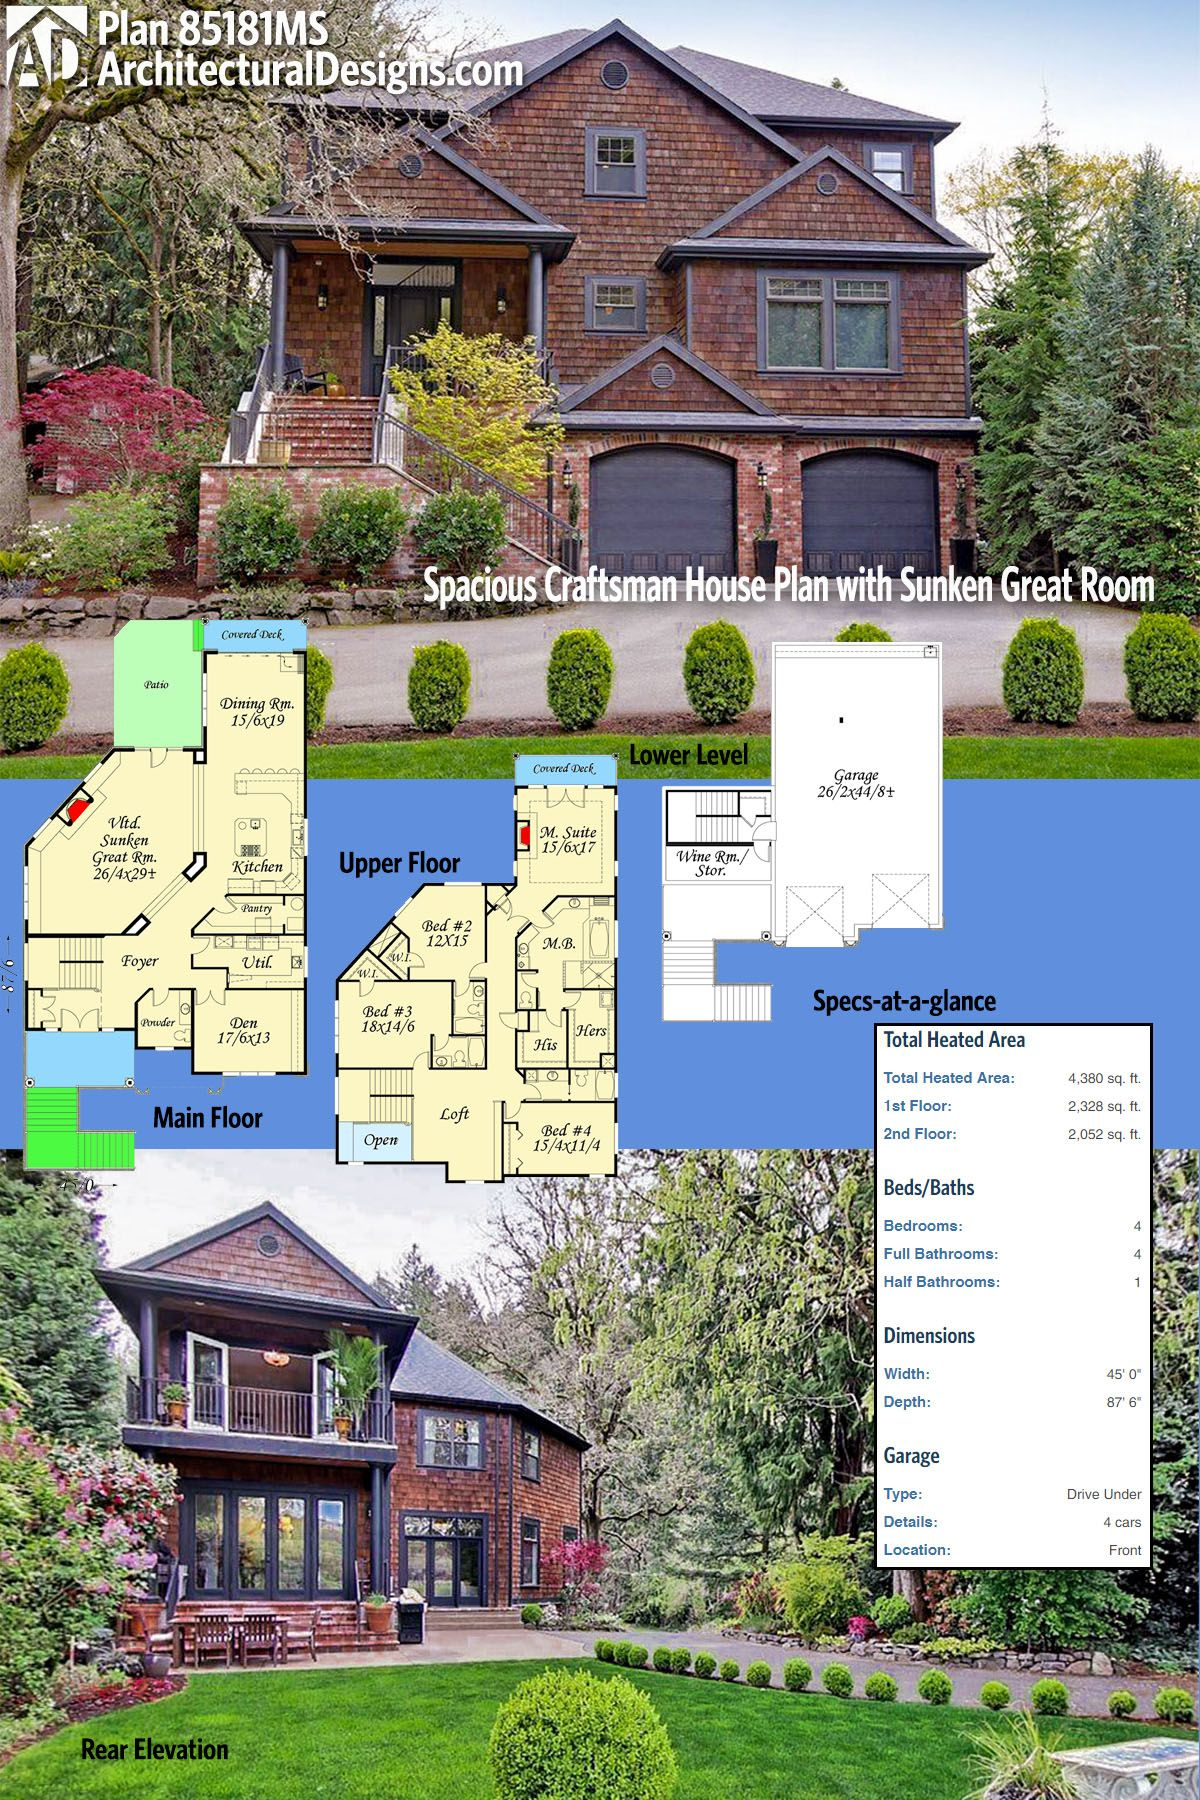 Plan 85181ms Spacious Craftsman House Plan With Sunken